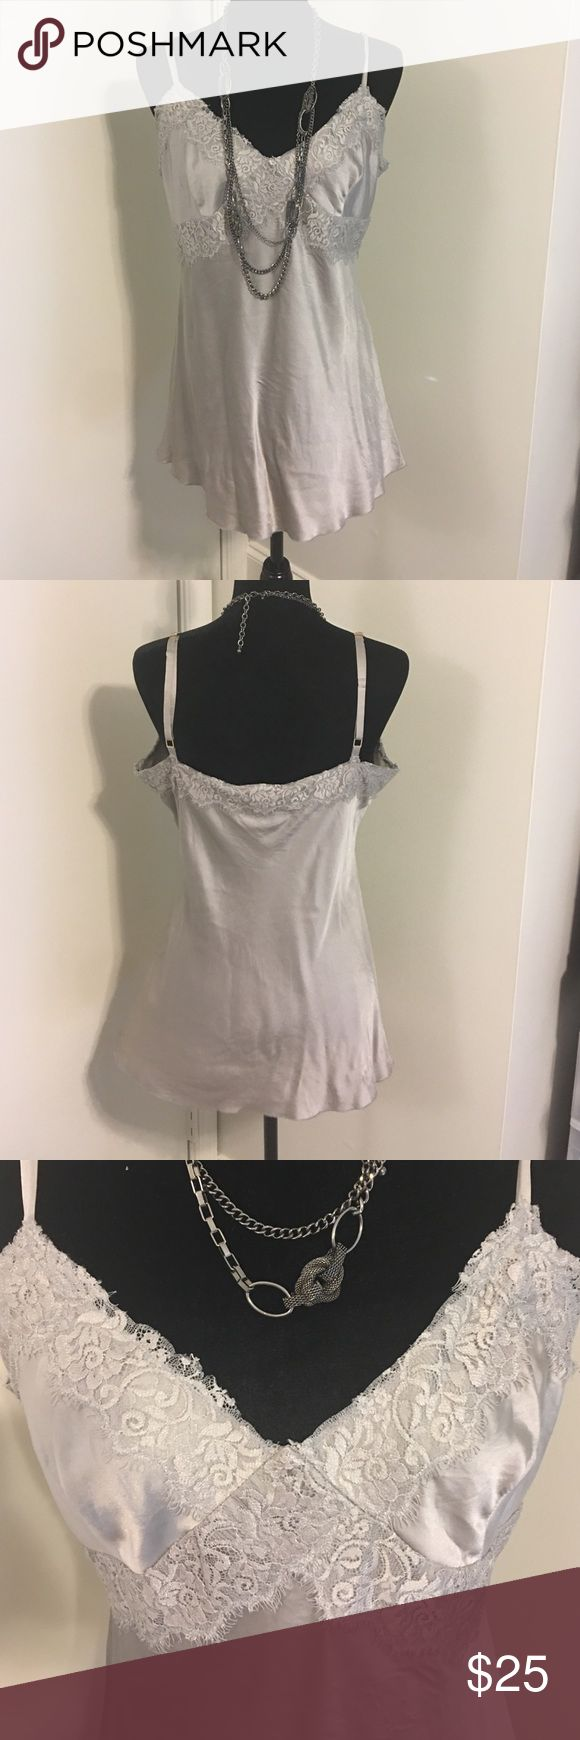 🆕Express Design Studio silver silk cami Express Design Studio silver silk cami- with adjustable straps and lace detailing - truly beautiful blouse to layer or wear alone! Express Design Studio Tops Camisoles